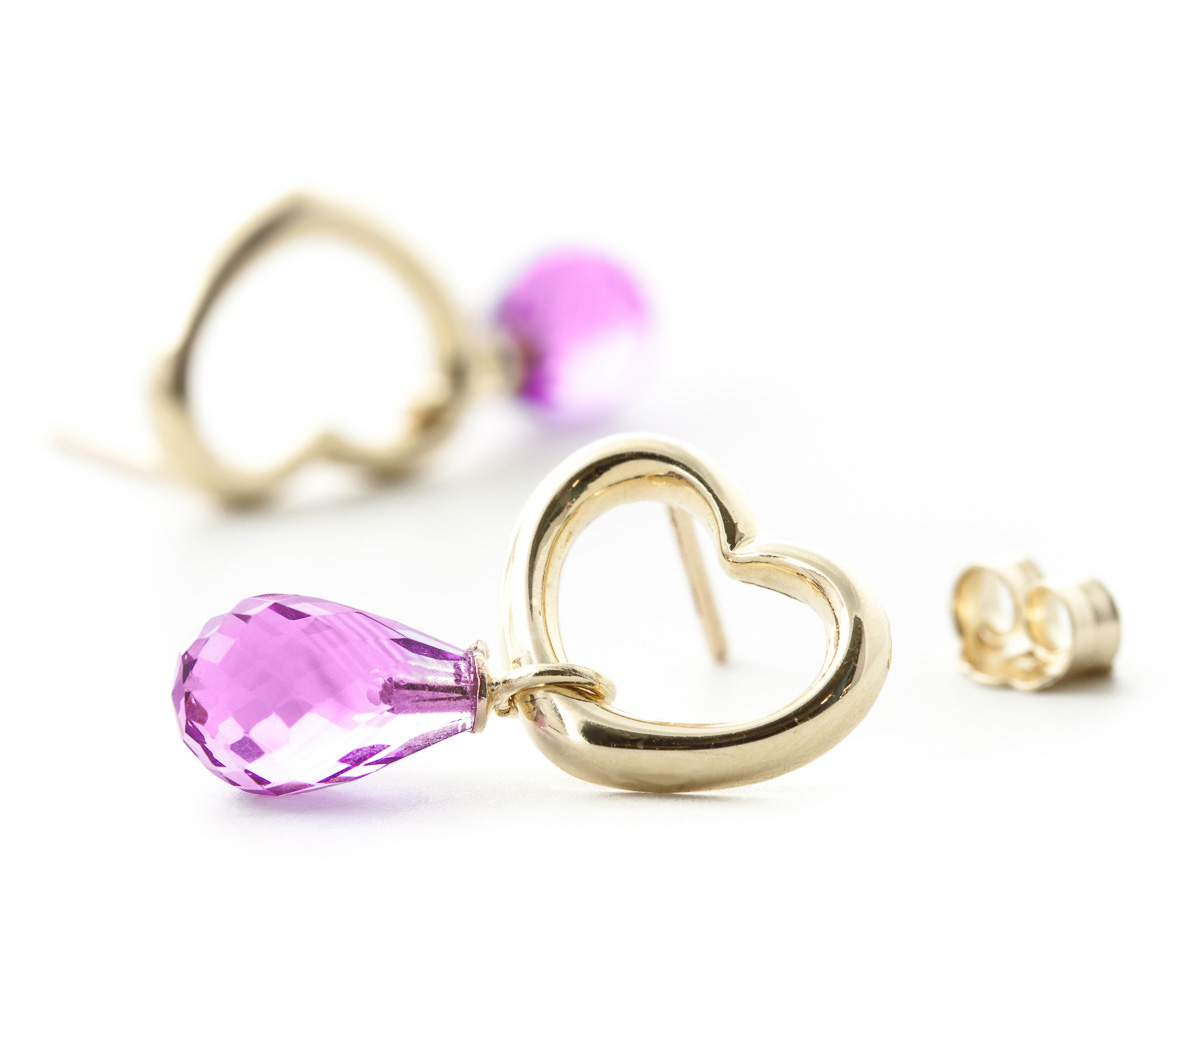 Pink Topaz Stud Earrings 4.5ctw in 9ct Gold